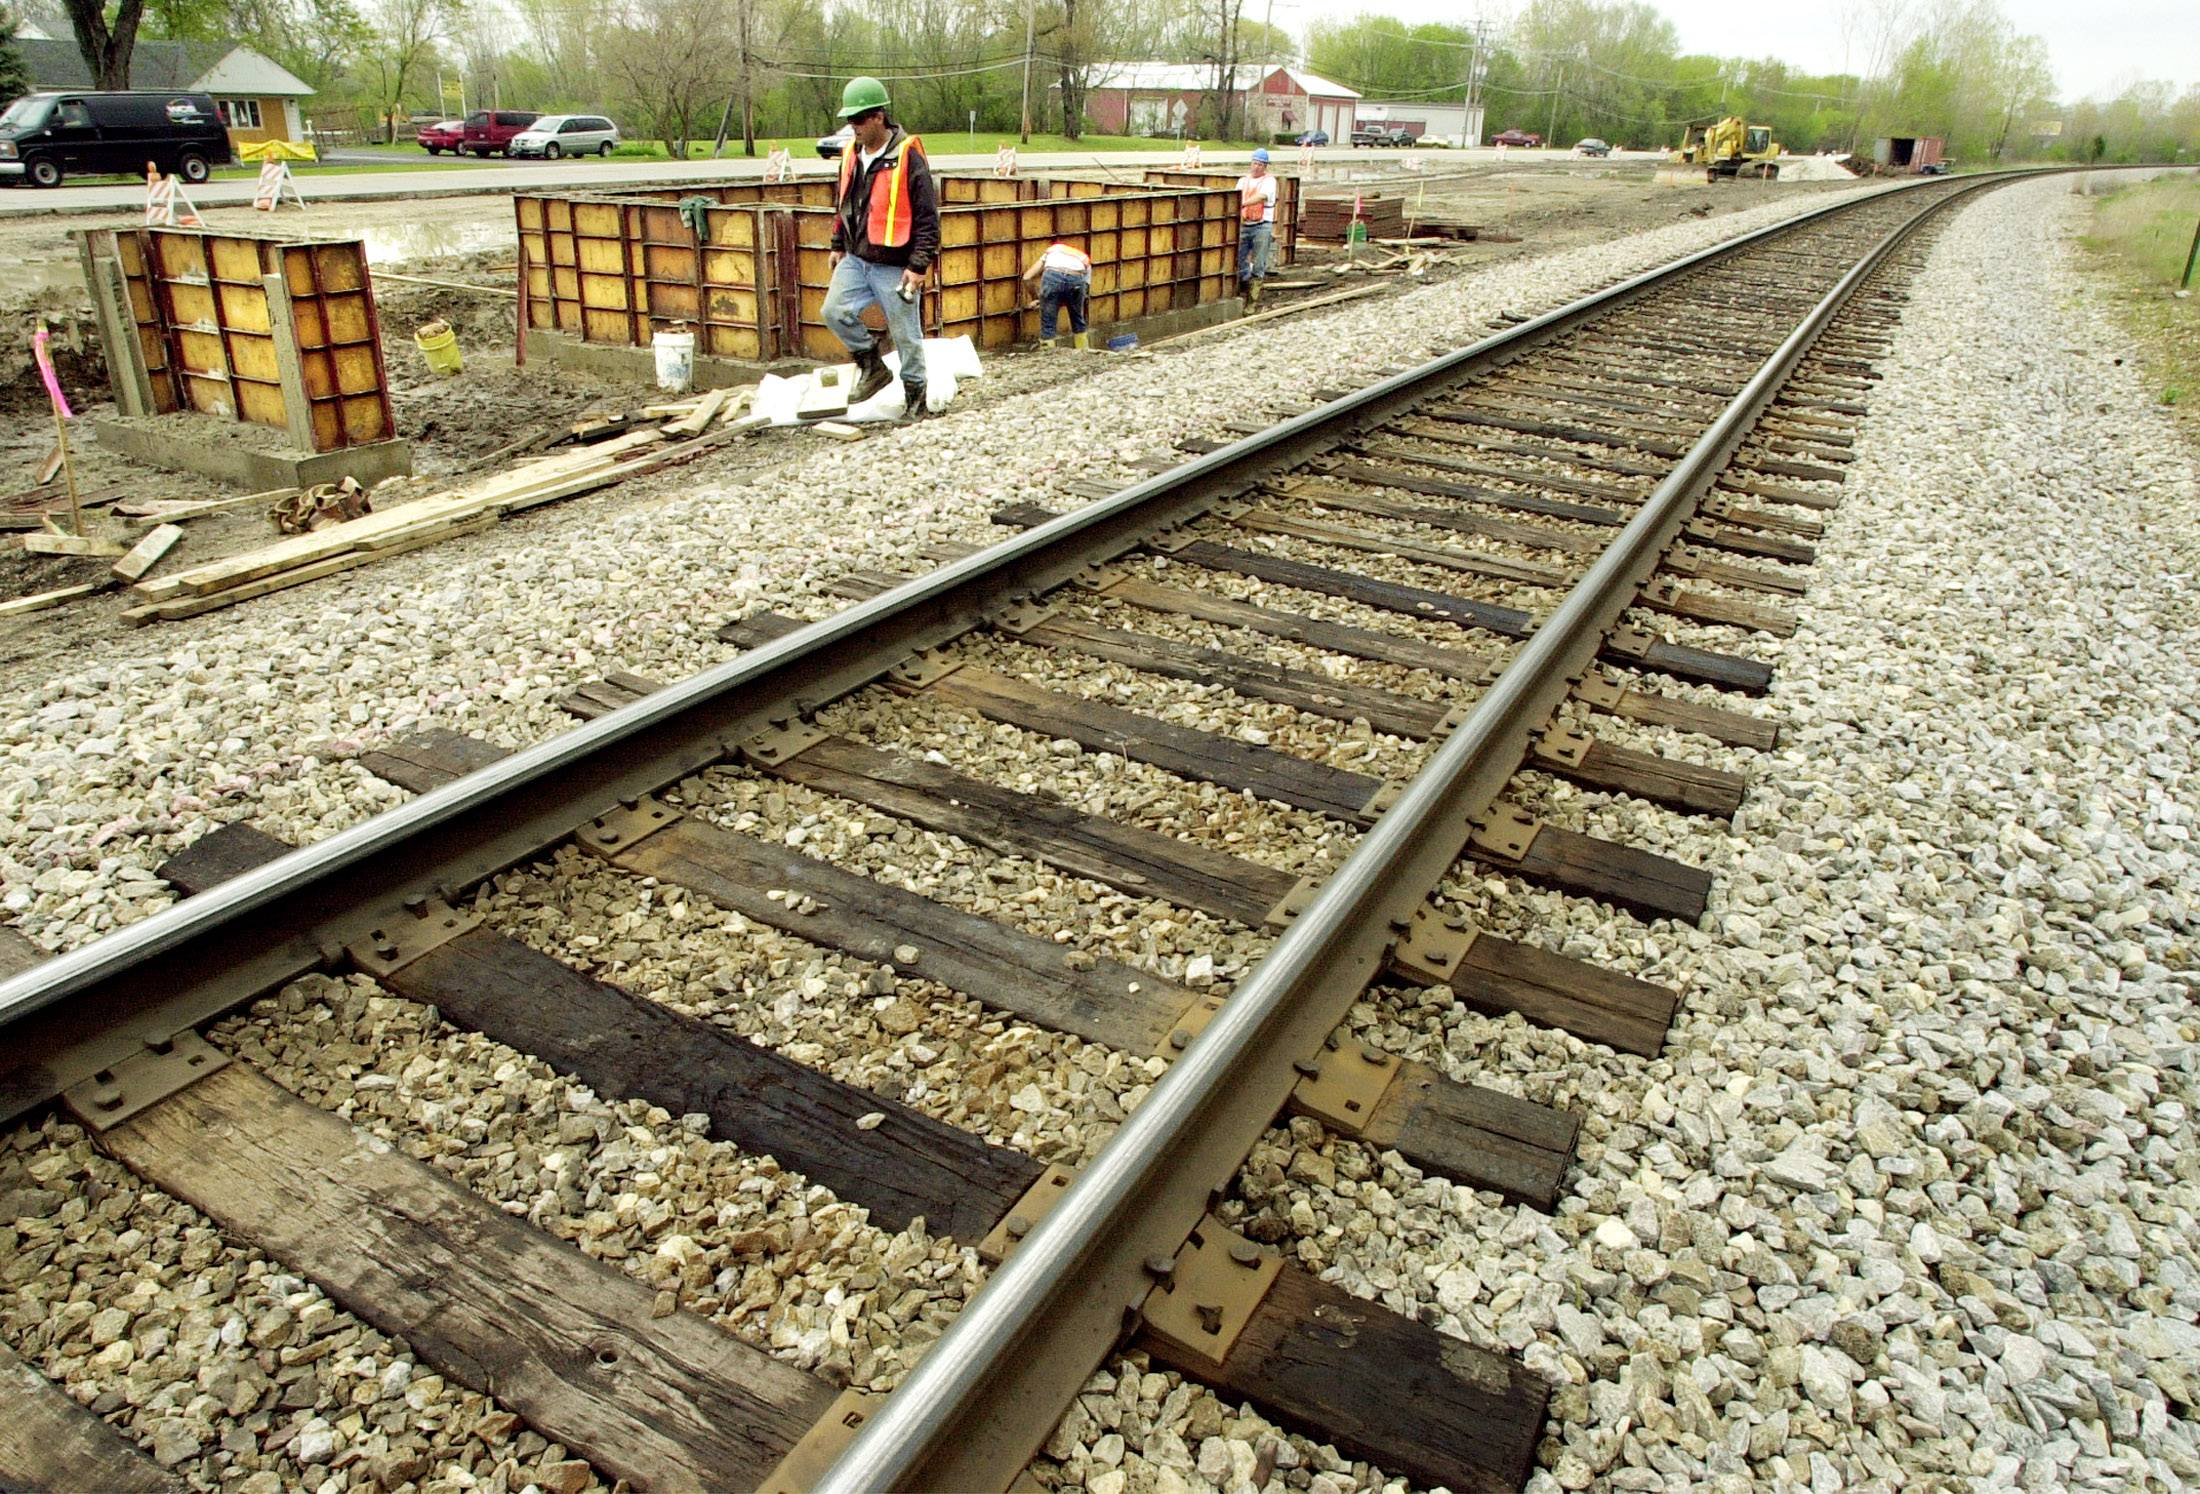 Metra BNSF riders can expect schedule tweaks this weekend as the railroad repairs track.